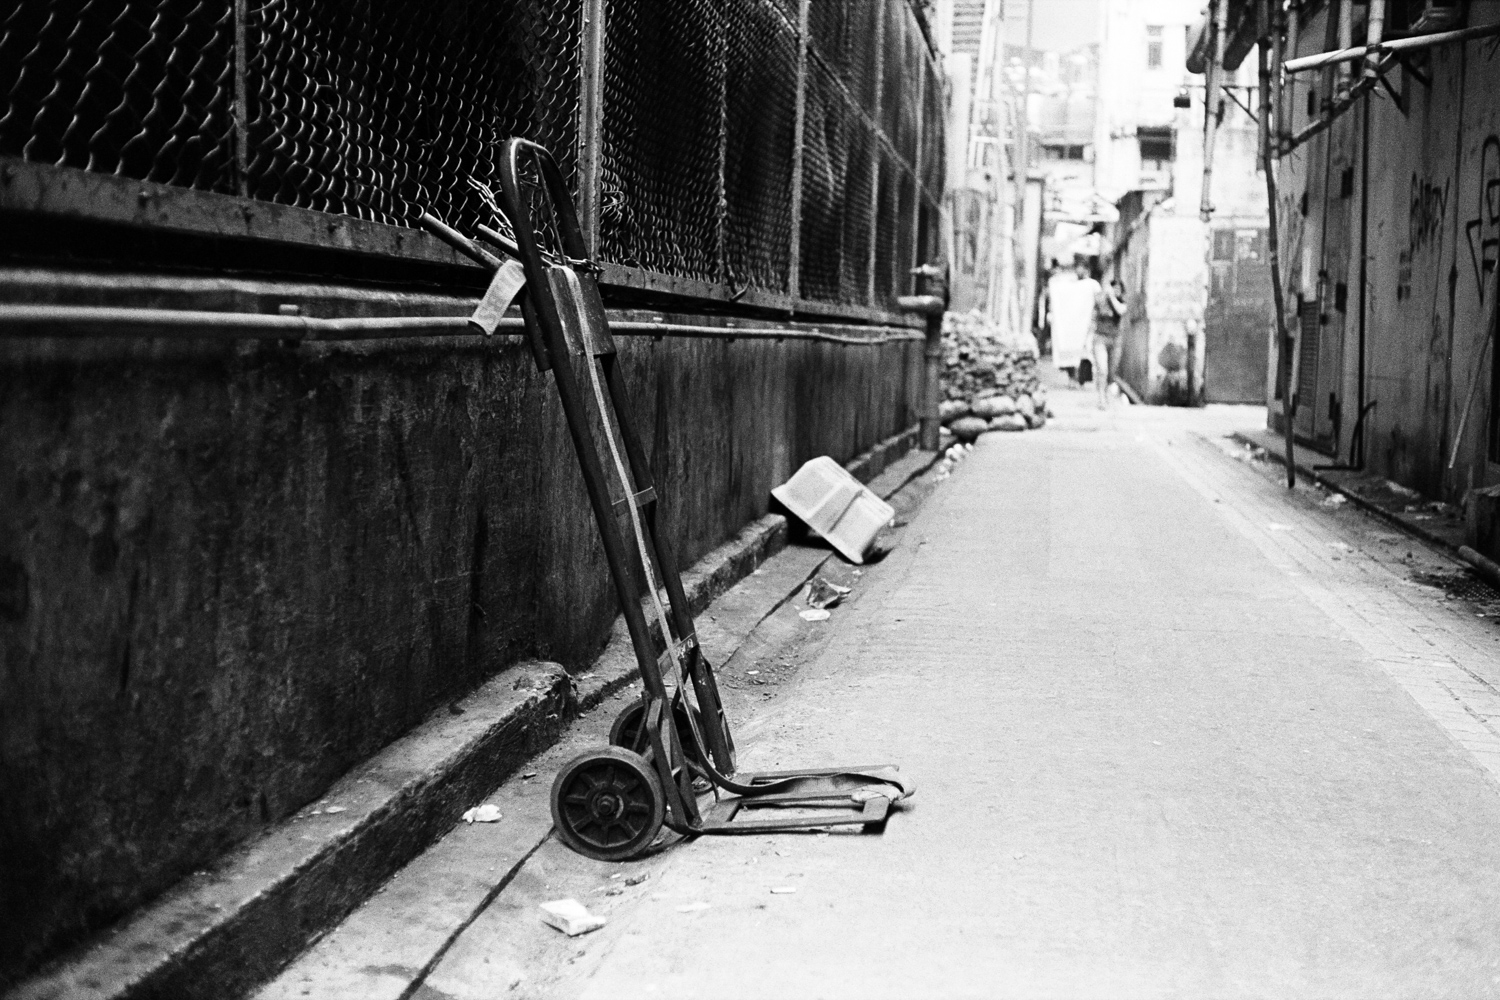 Backalley in Hong Kong - Yashica Electro 35 - Kodak TX400 - XTOL 1:1 - Kodak Pakon Scanner